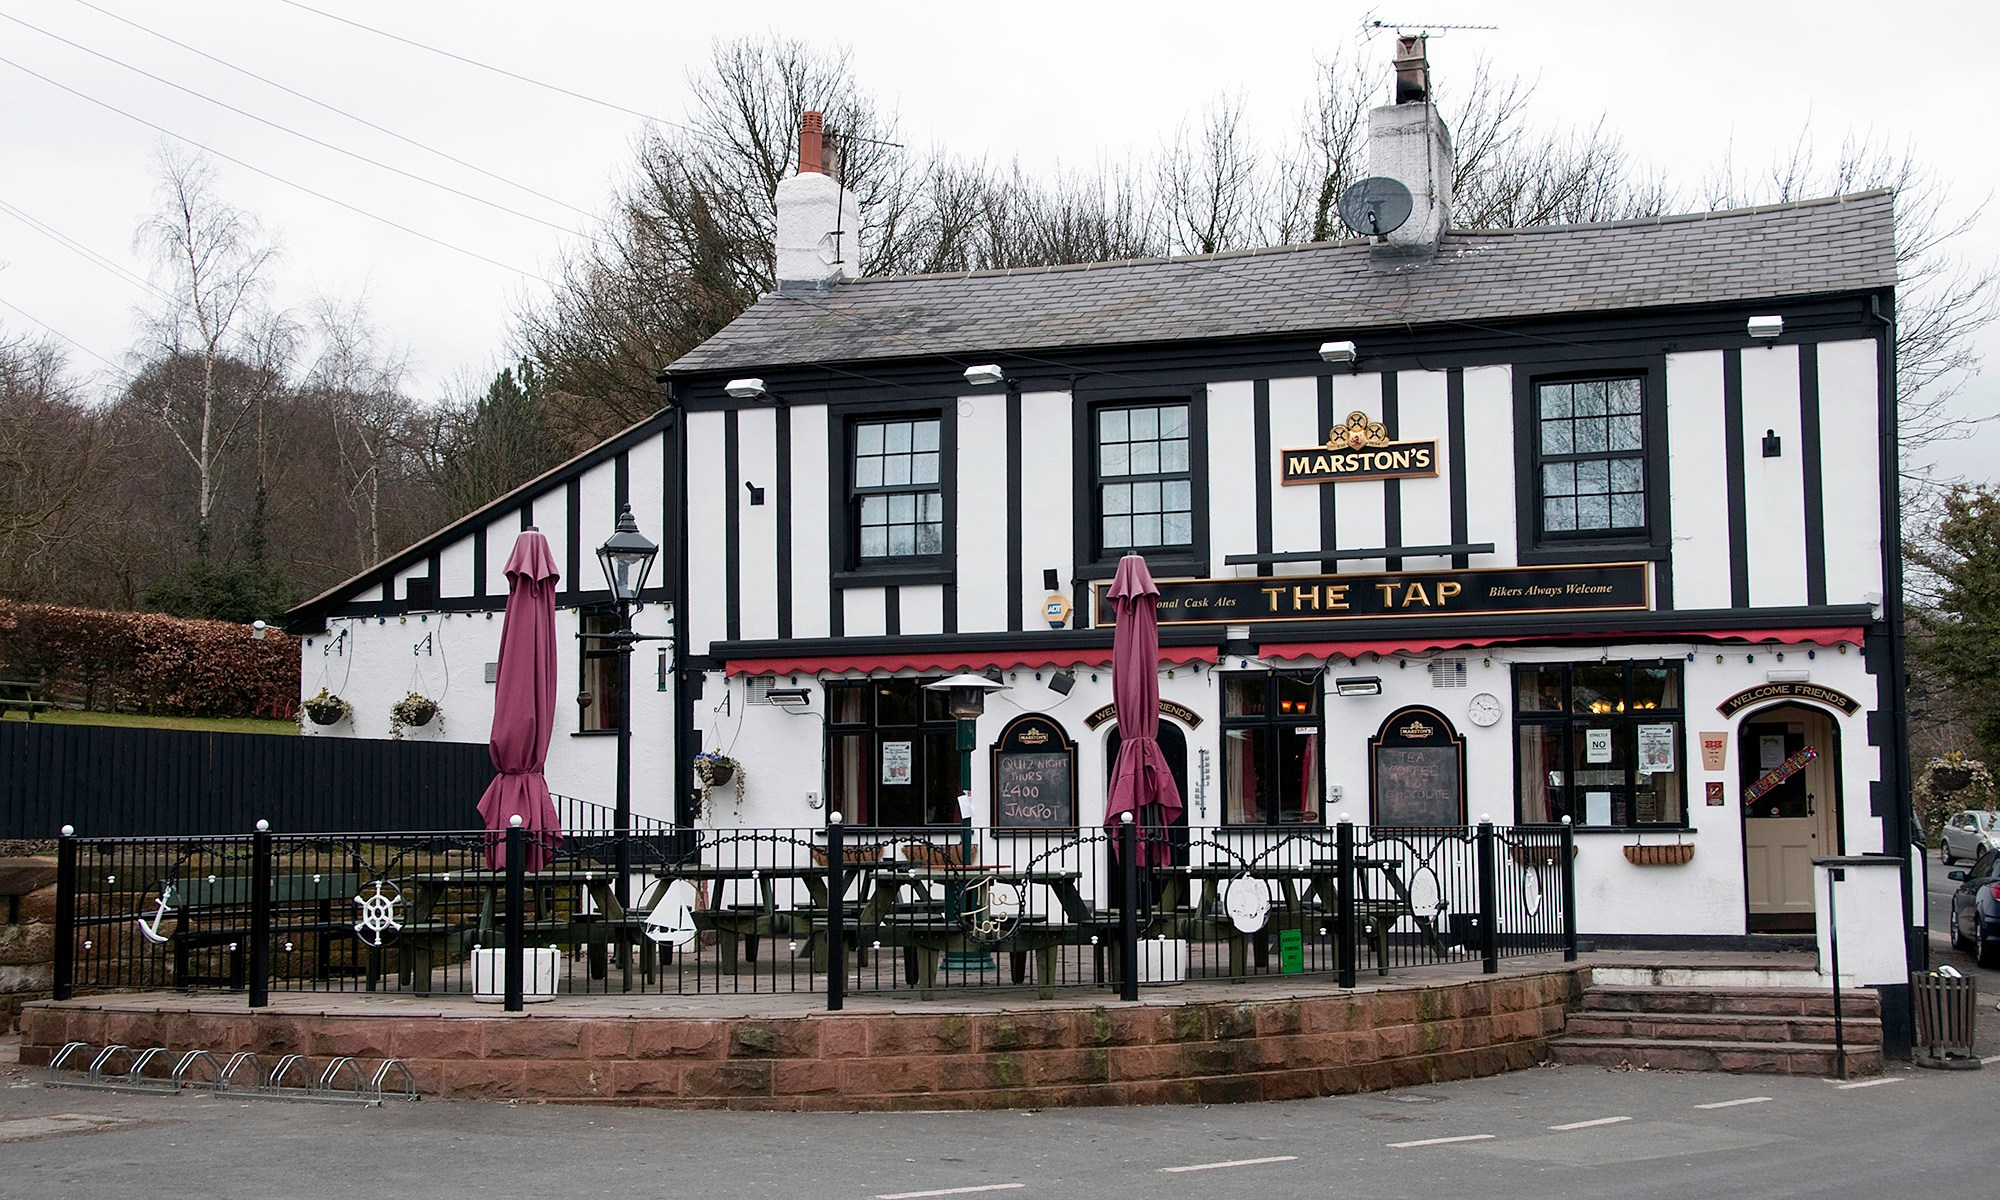 The Tap Pub at Eastham on the Wirral